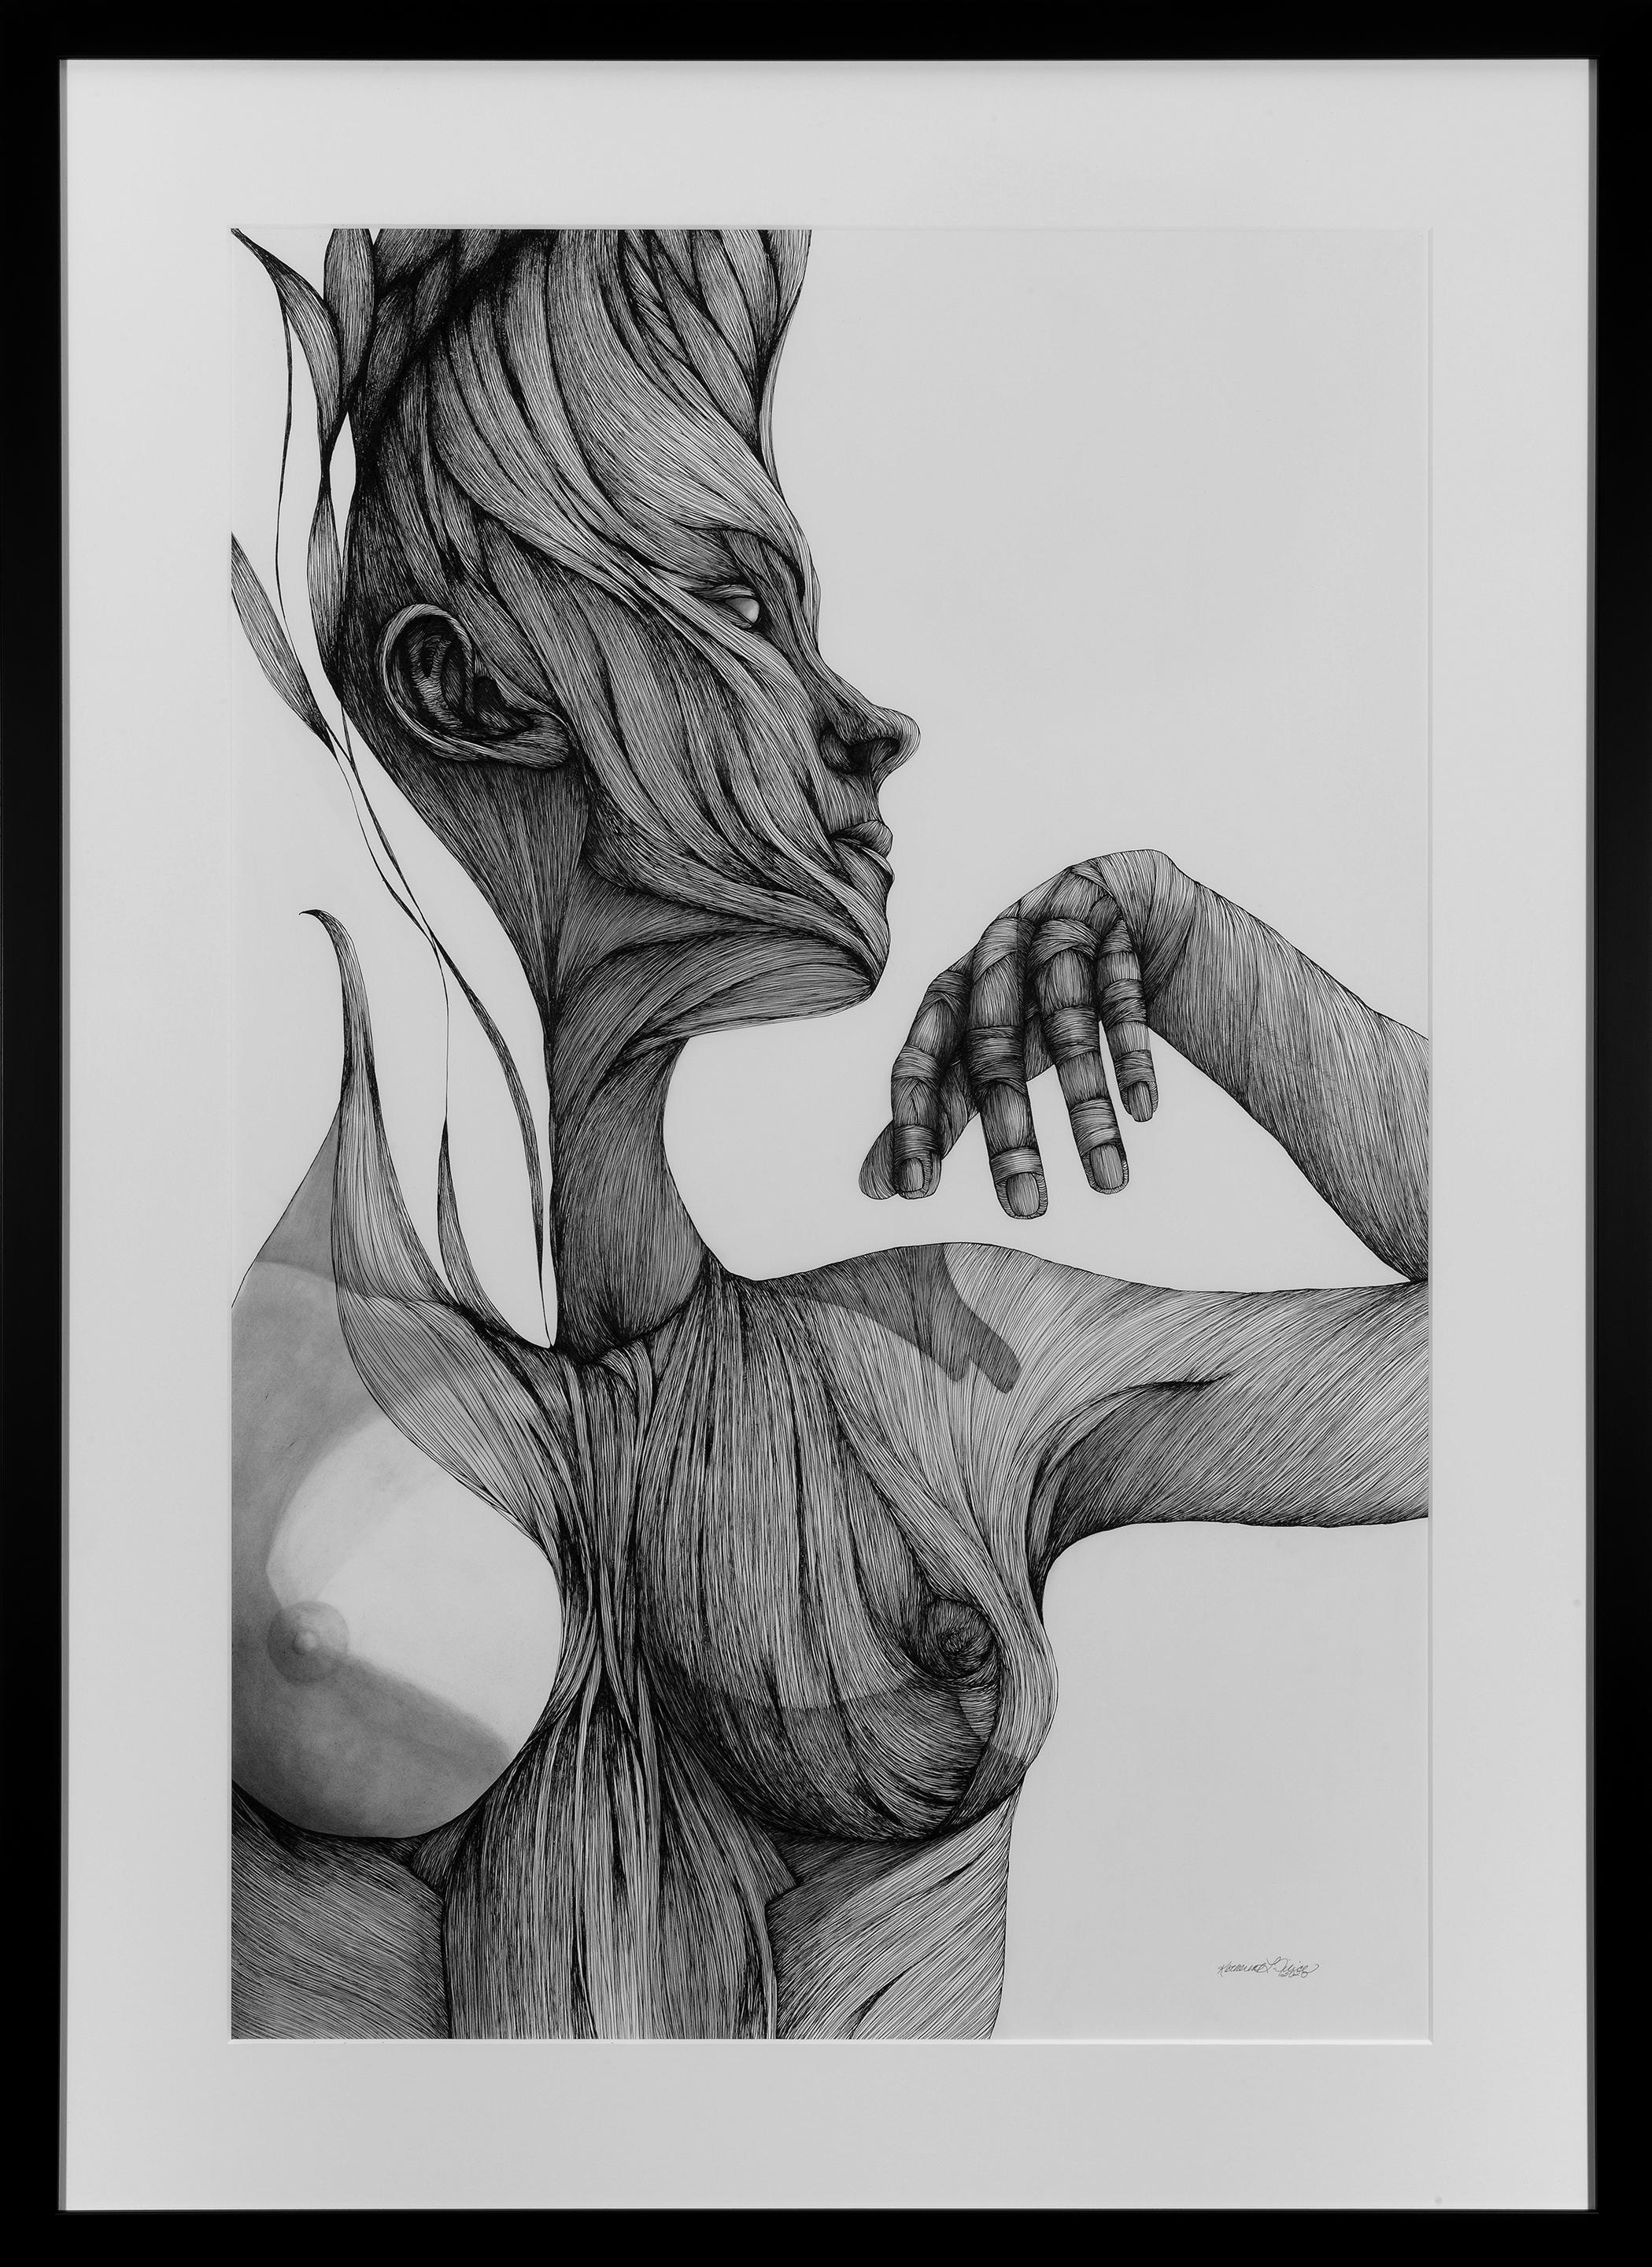 Ether - Pen, Ink, Black White Drawing of Female Figure